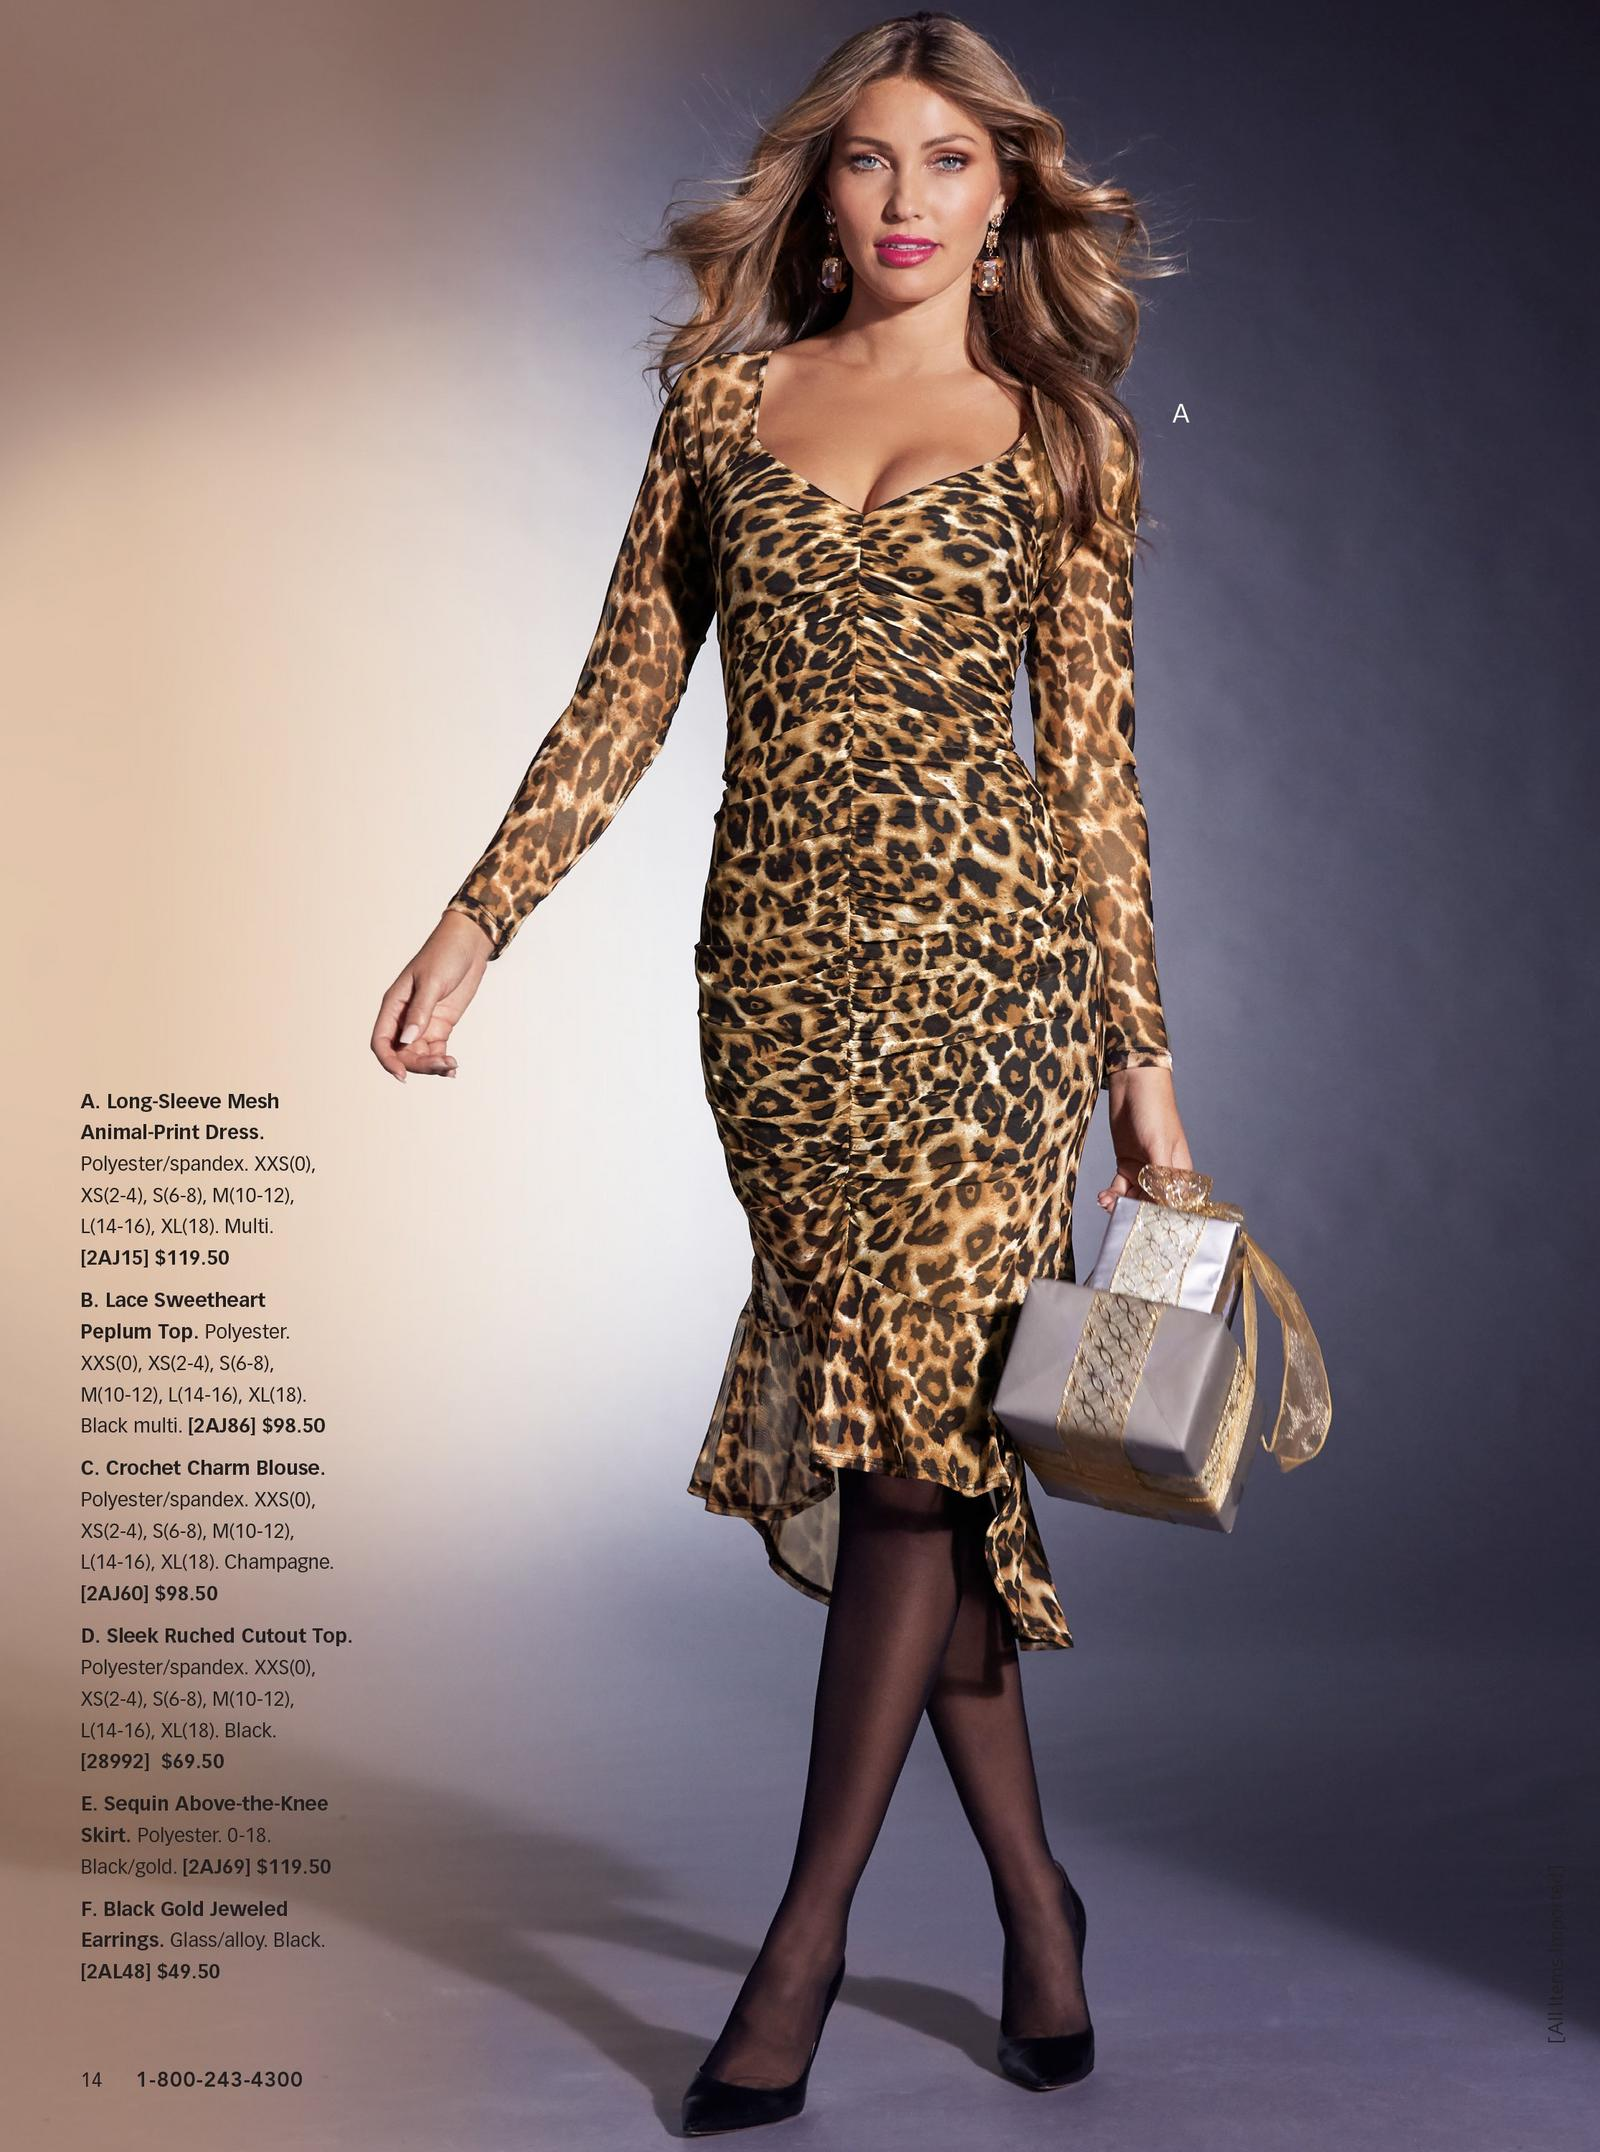 model wearing long-sleeve mesh animal-print dress while holding a wrapped gift.